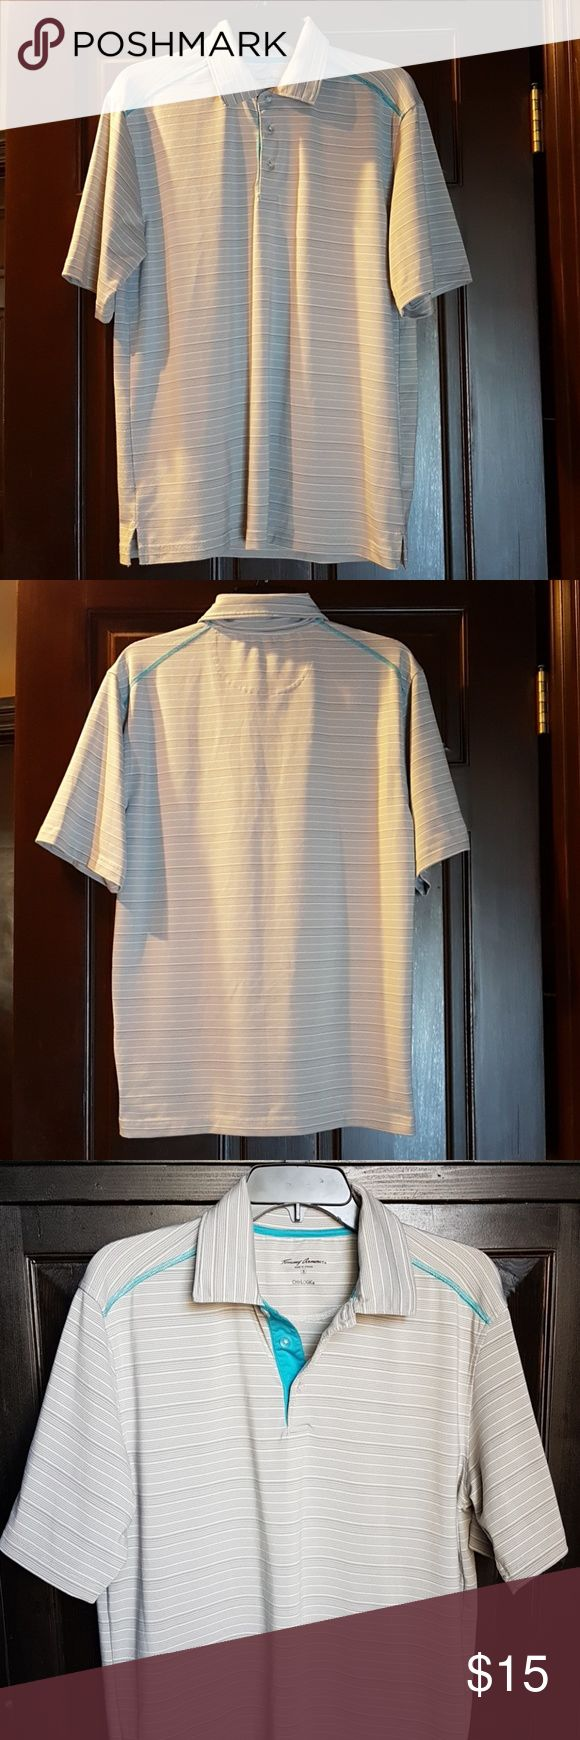 💥SALE TODAY ONLY💥Men's Polo Golf Shirt Tommy Armour Dri-Logic brand polo shirt  Gray stripes with a nice Aqua Blue stitching and accent around the collar. Comes with an spare button *see pic  Very comfortable. Good condition.   Signs of slight wear on the right bottom (see pic) Tommy Armour Shirts Polos